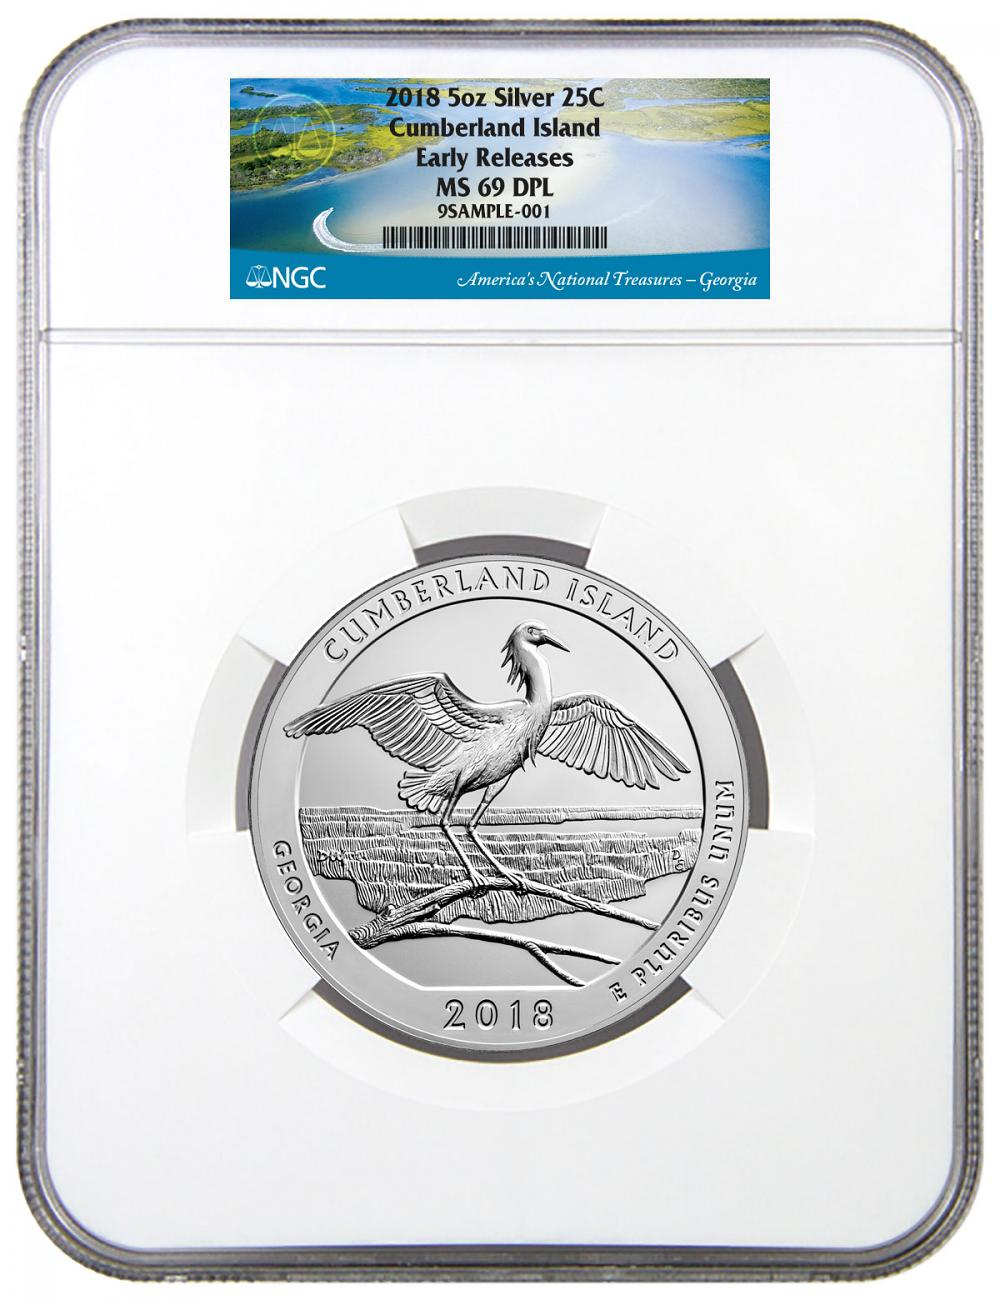 2018 Cumberland Island 5 oz. Silver America the Beautiful Coin NGC MS69 DPL ER